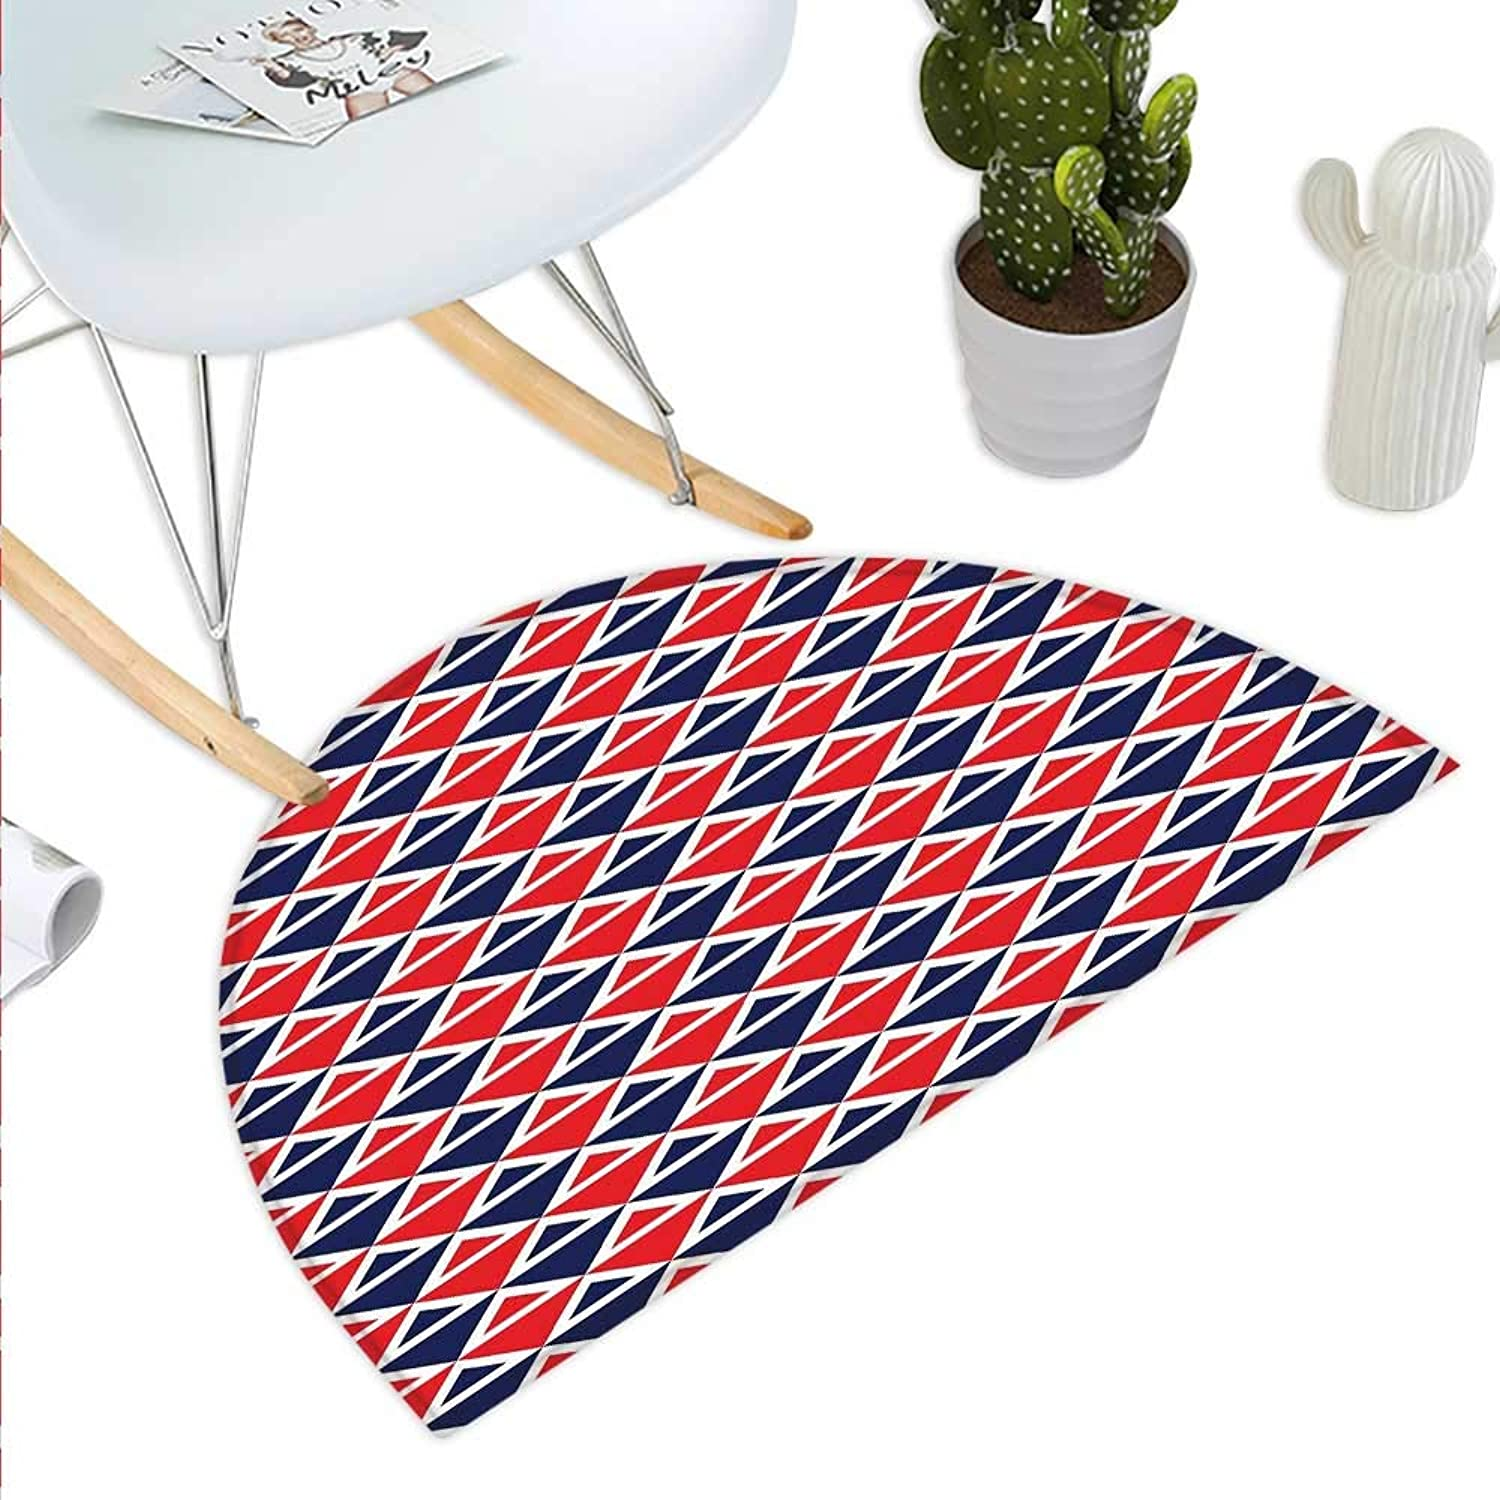 Americana Semicircle Doormat USA Flag Inspired Abstract Pattern Squares and Triangles Artwork Halfmoon doormats H 35.4  xD 53.1  Red Dark bluee and White